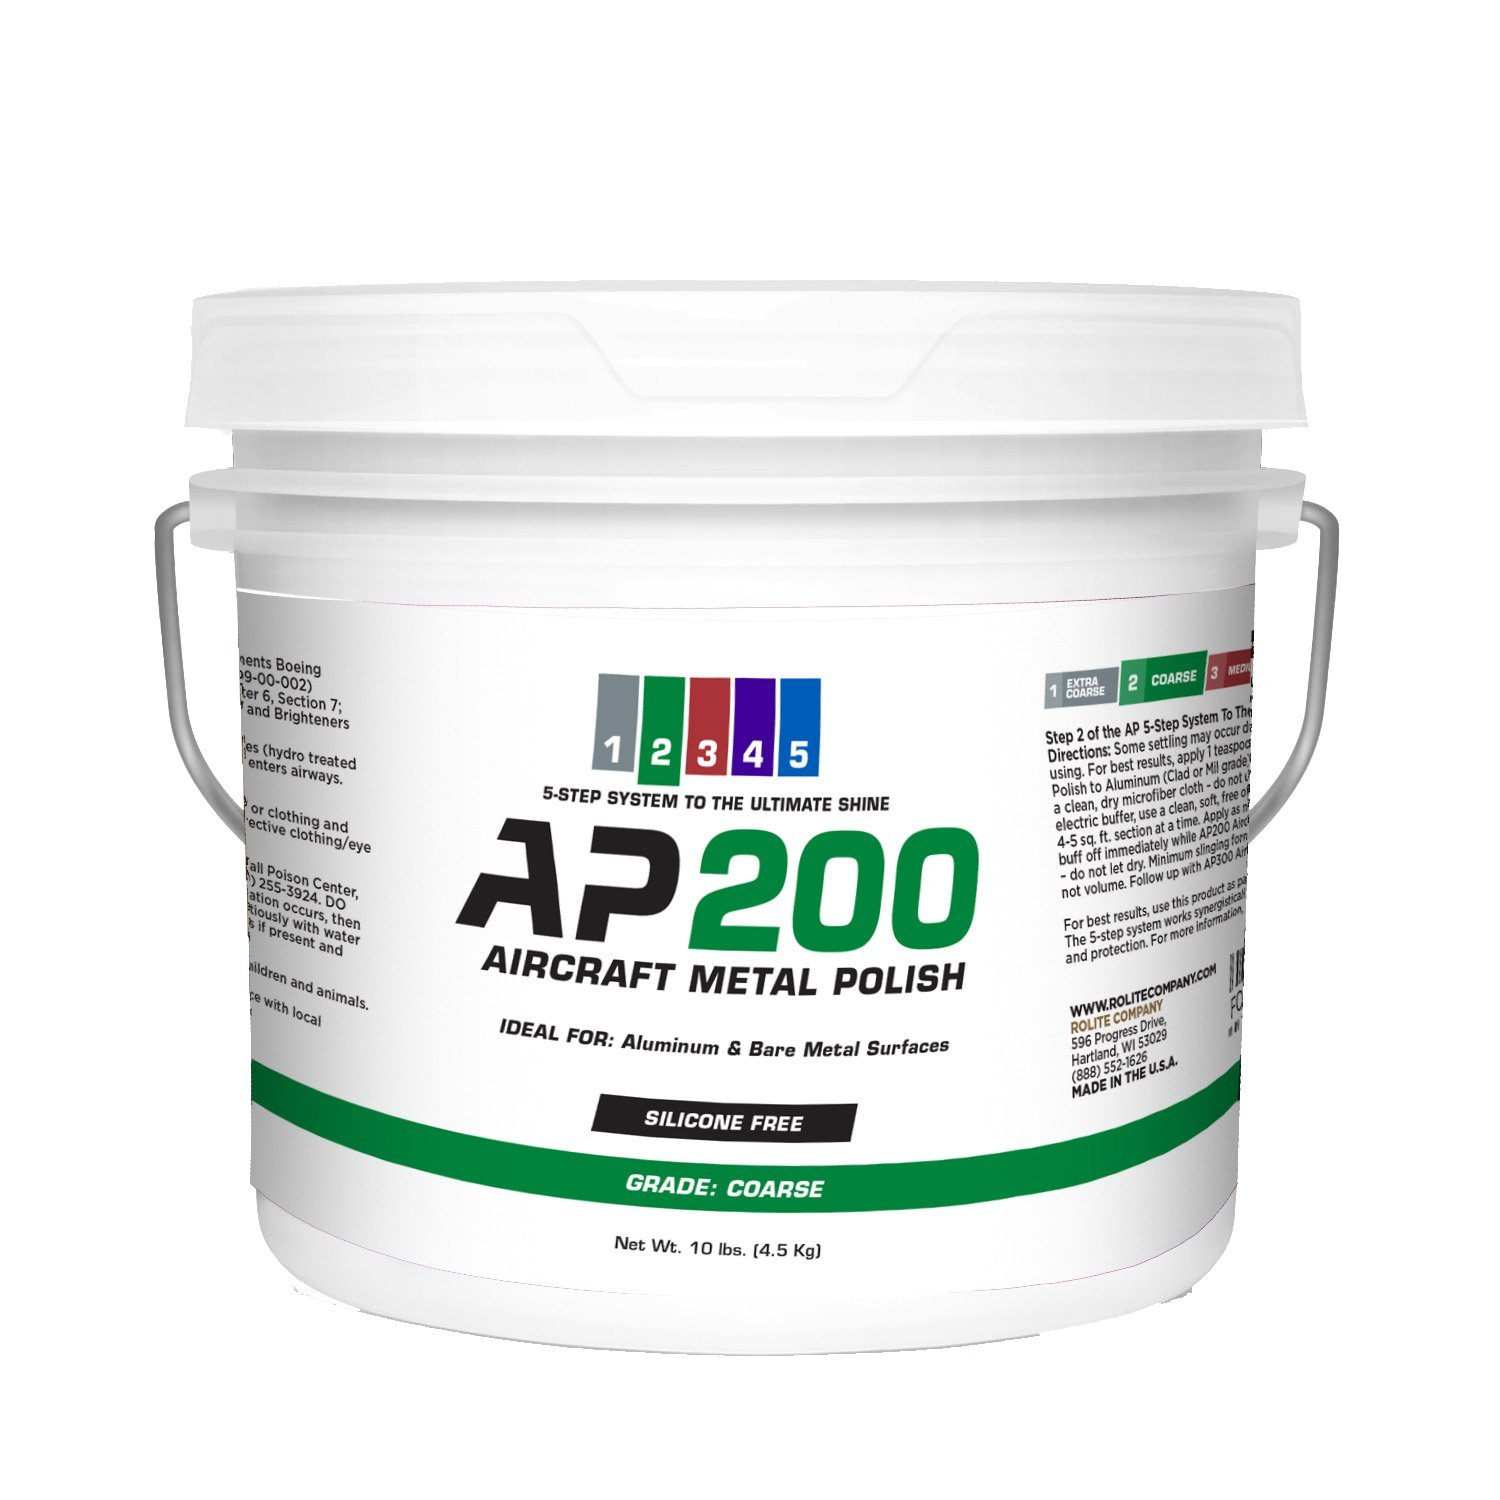 AP200 Aircraft Metal Polish (10lb) - Coarse - for Airplane Aluminum & Bare Metal Surfaces, Brightwork, Meets Boeing & Airbus Requirements